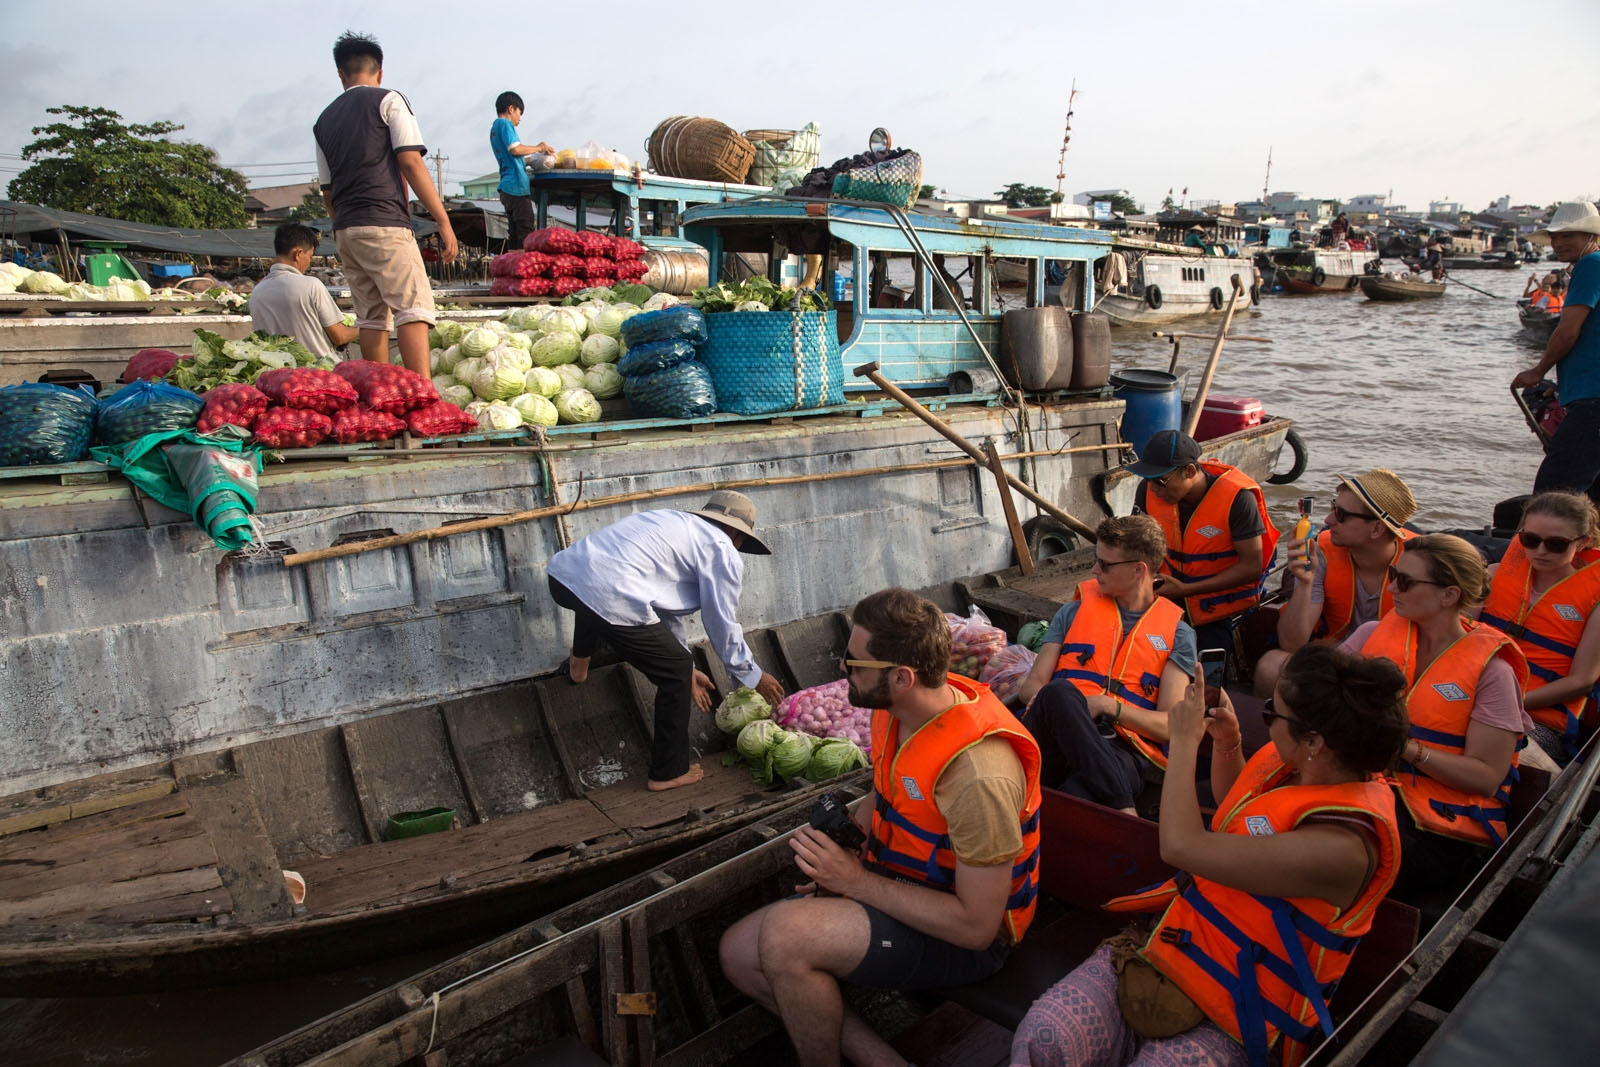 Foreign tourists take photographs of the activities at Cai Rang floating market in Can Tho city. Cai Rang is the largest floating market in the Mekong Delta but due to improved infrastructure in the form of roads and bridges the market is slowly declining as vendors prefer the speed and availability of roads. Now tourist boats almost out-number the house boats selling vegetables and fruit.